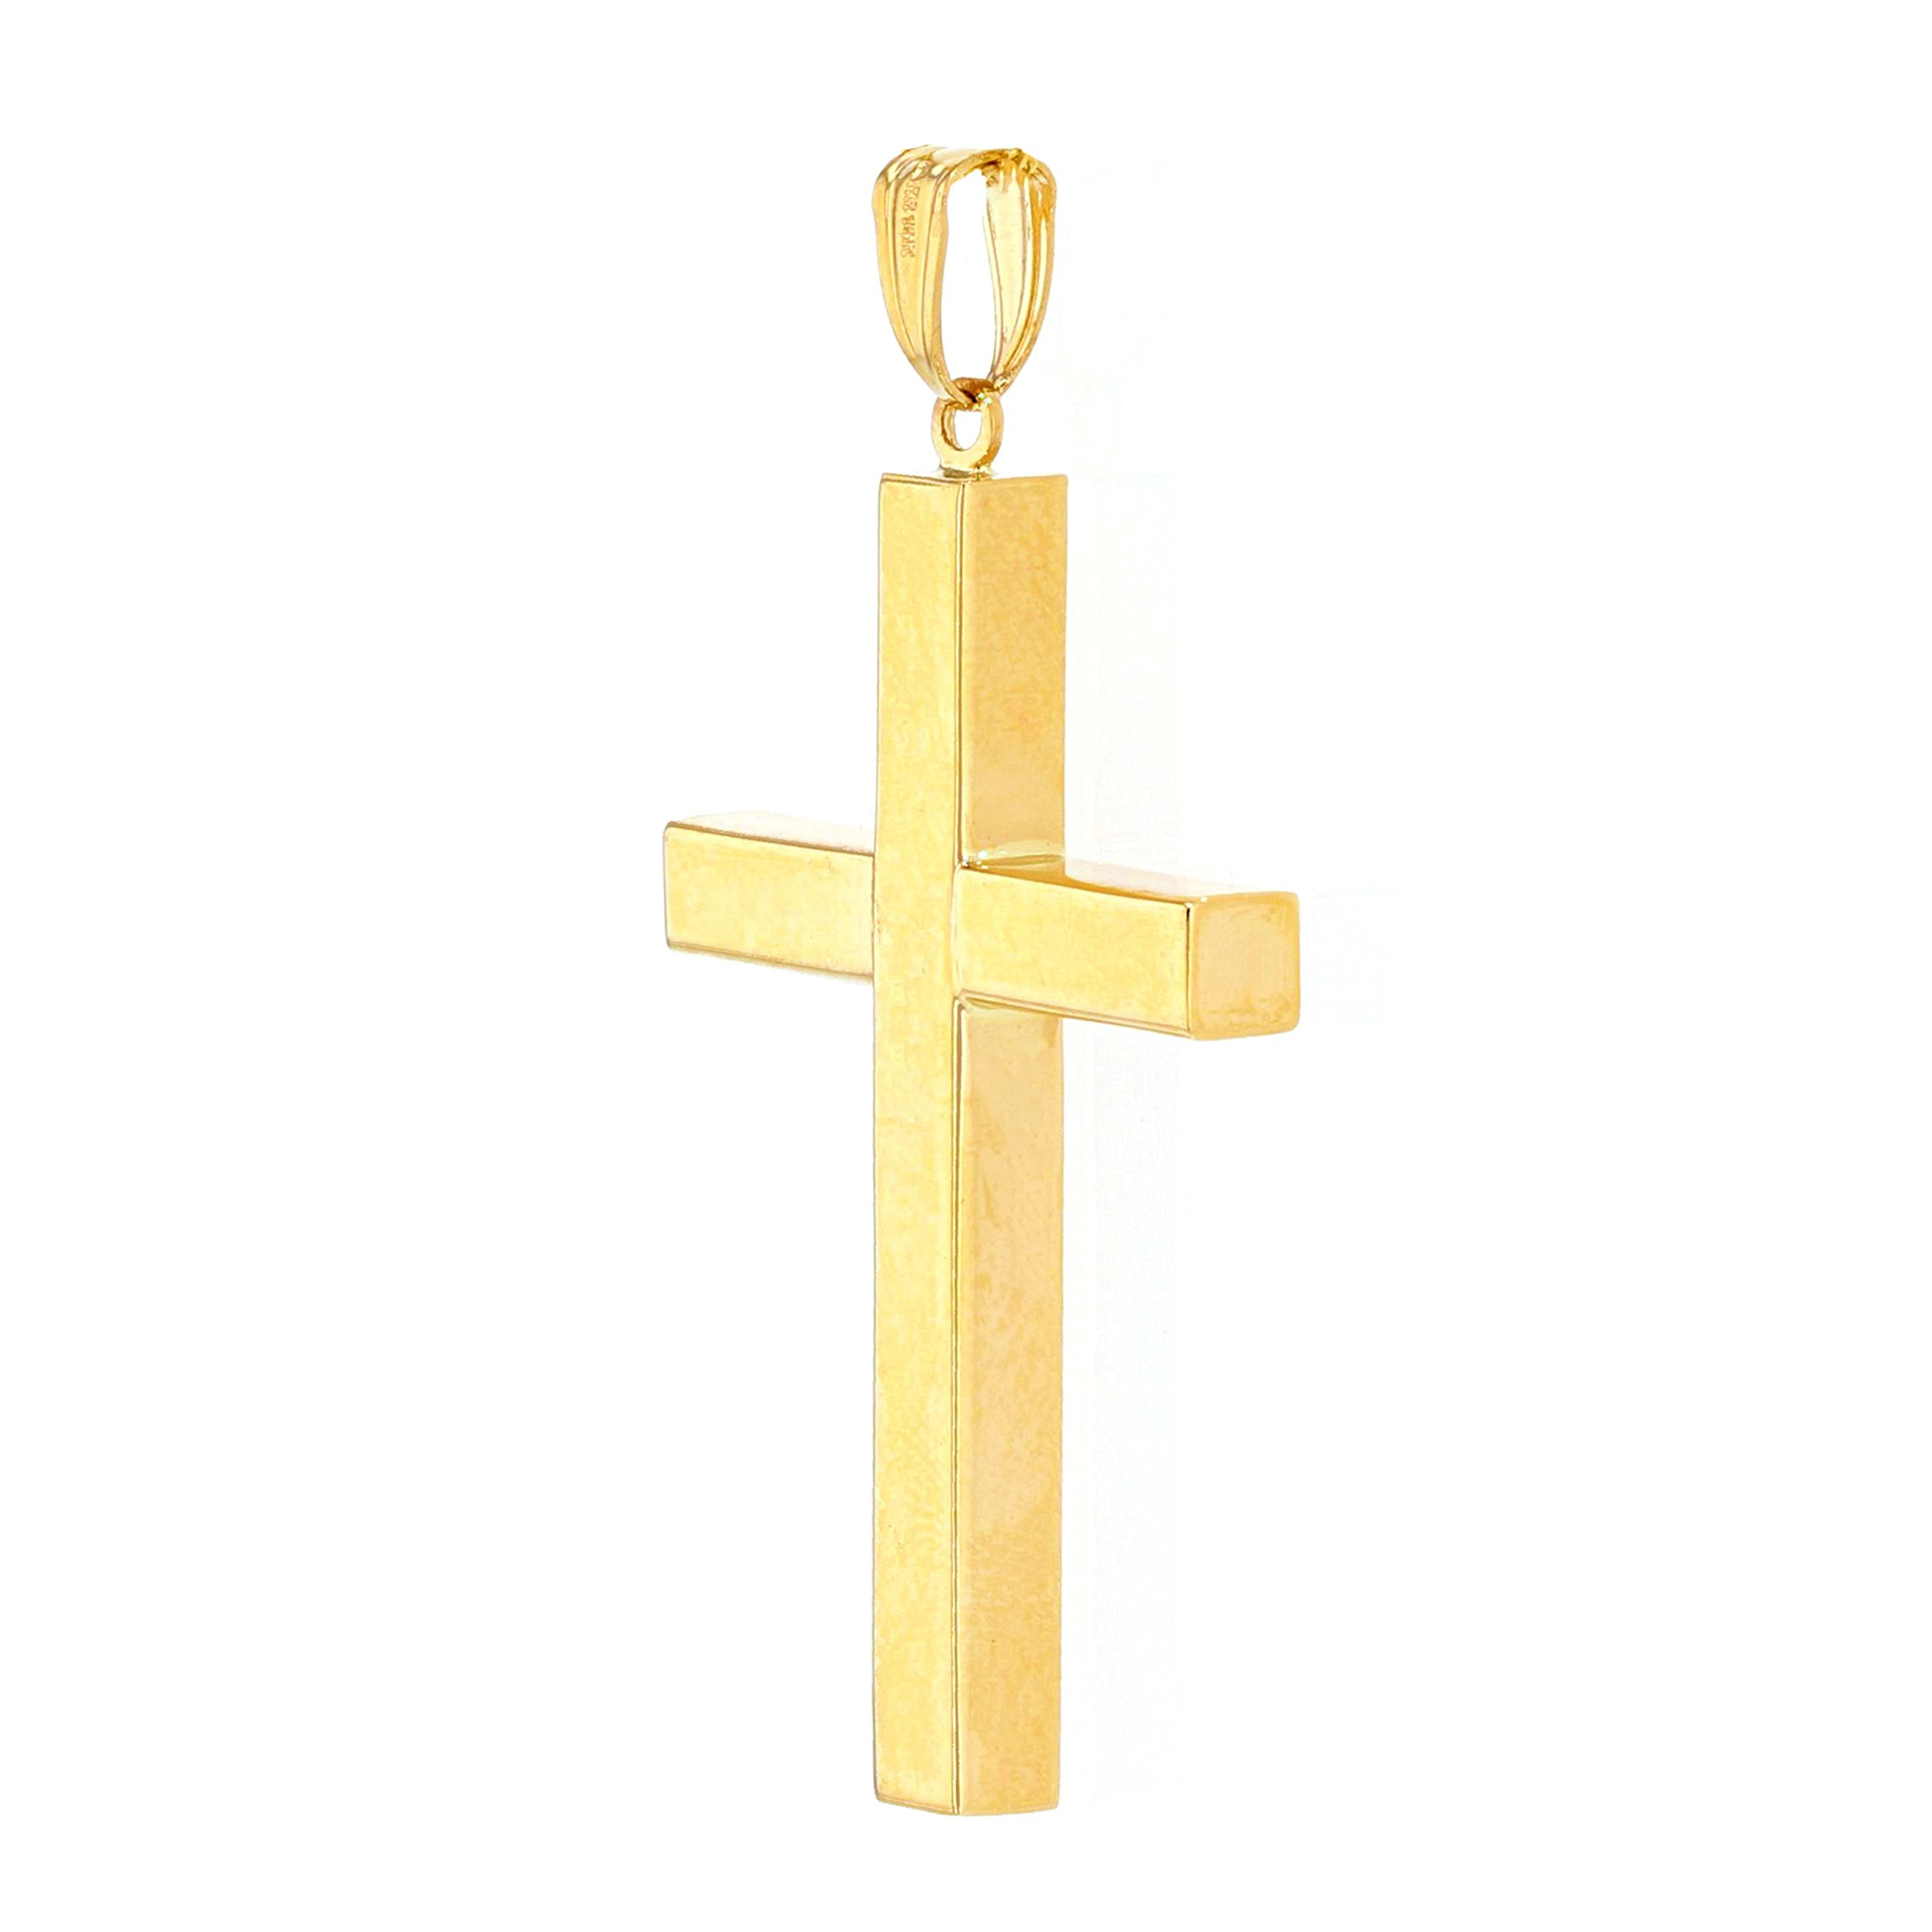 14k Yellow Gold Simple Religious Cross Pendant with Cuban Chain Necklace, 24'' by JewelryAmerica (Image #2)